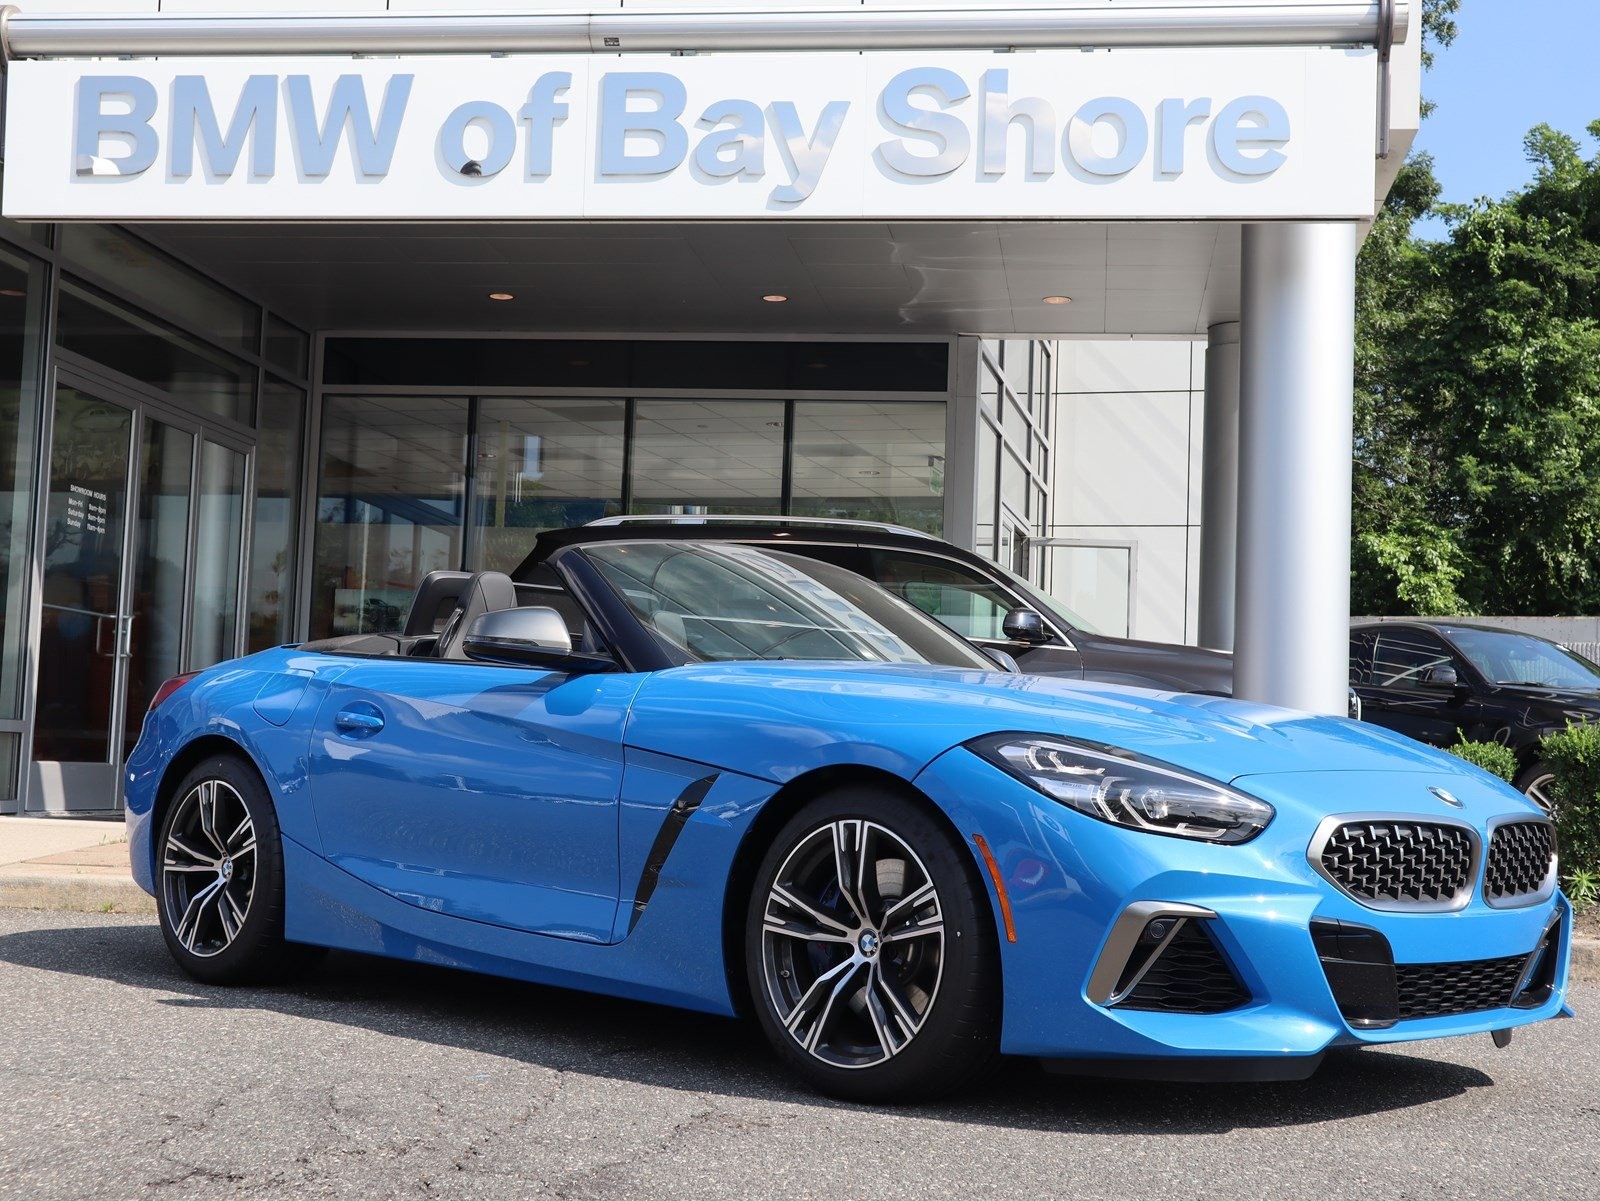 New 2020 Bmw Z4 M40i Roadster Convertible